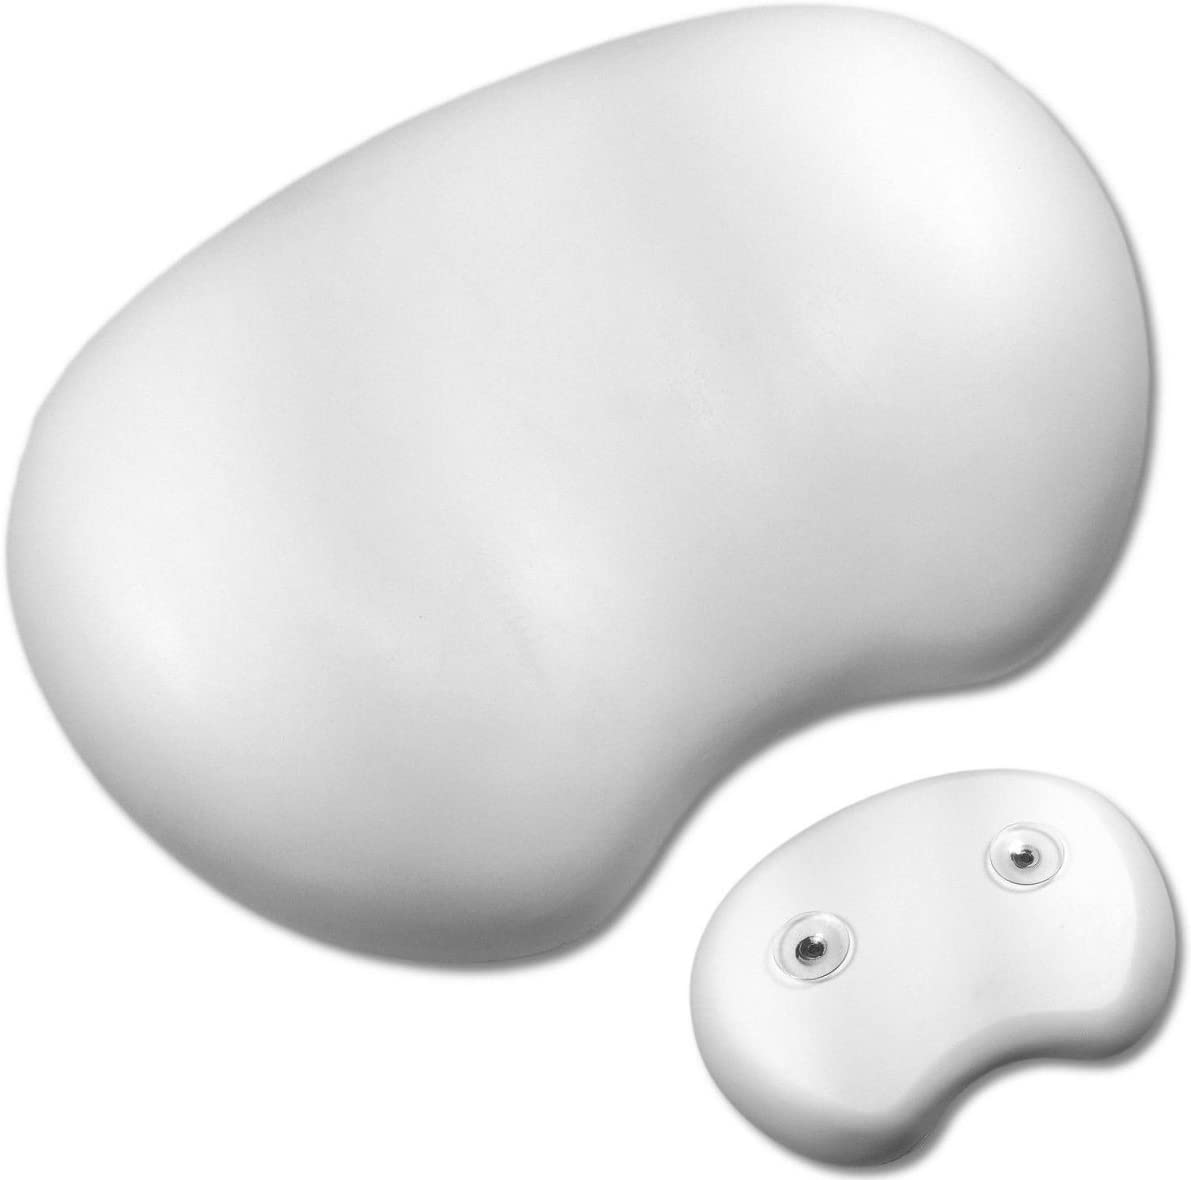 Spa Max 51% OFF Pillow Bathtub Ultimate Comfort and Heav Relaxation With Indefinitely